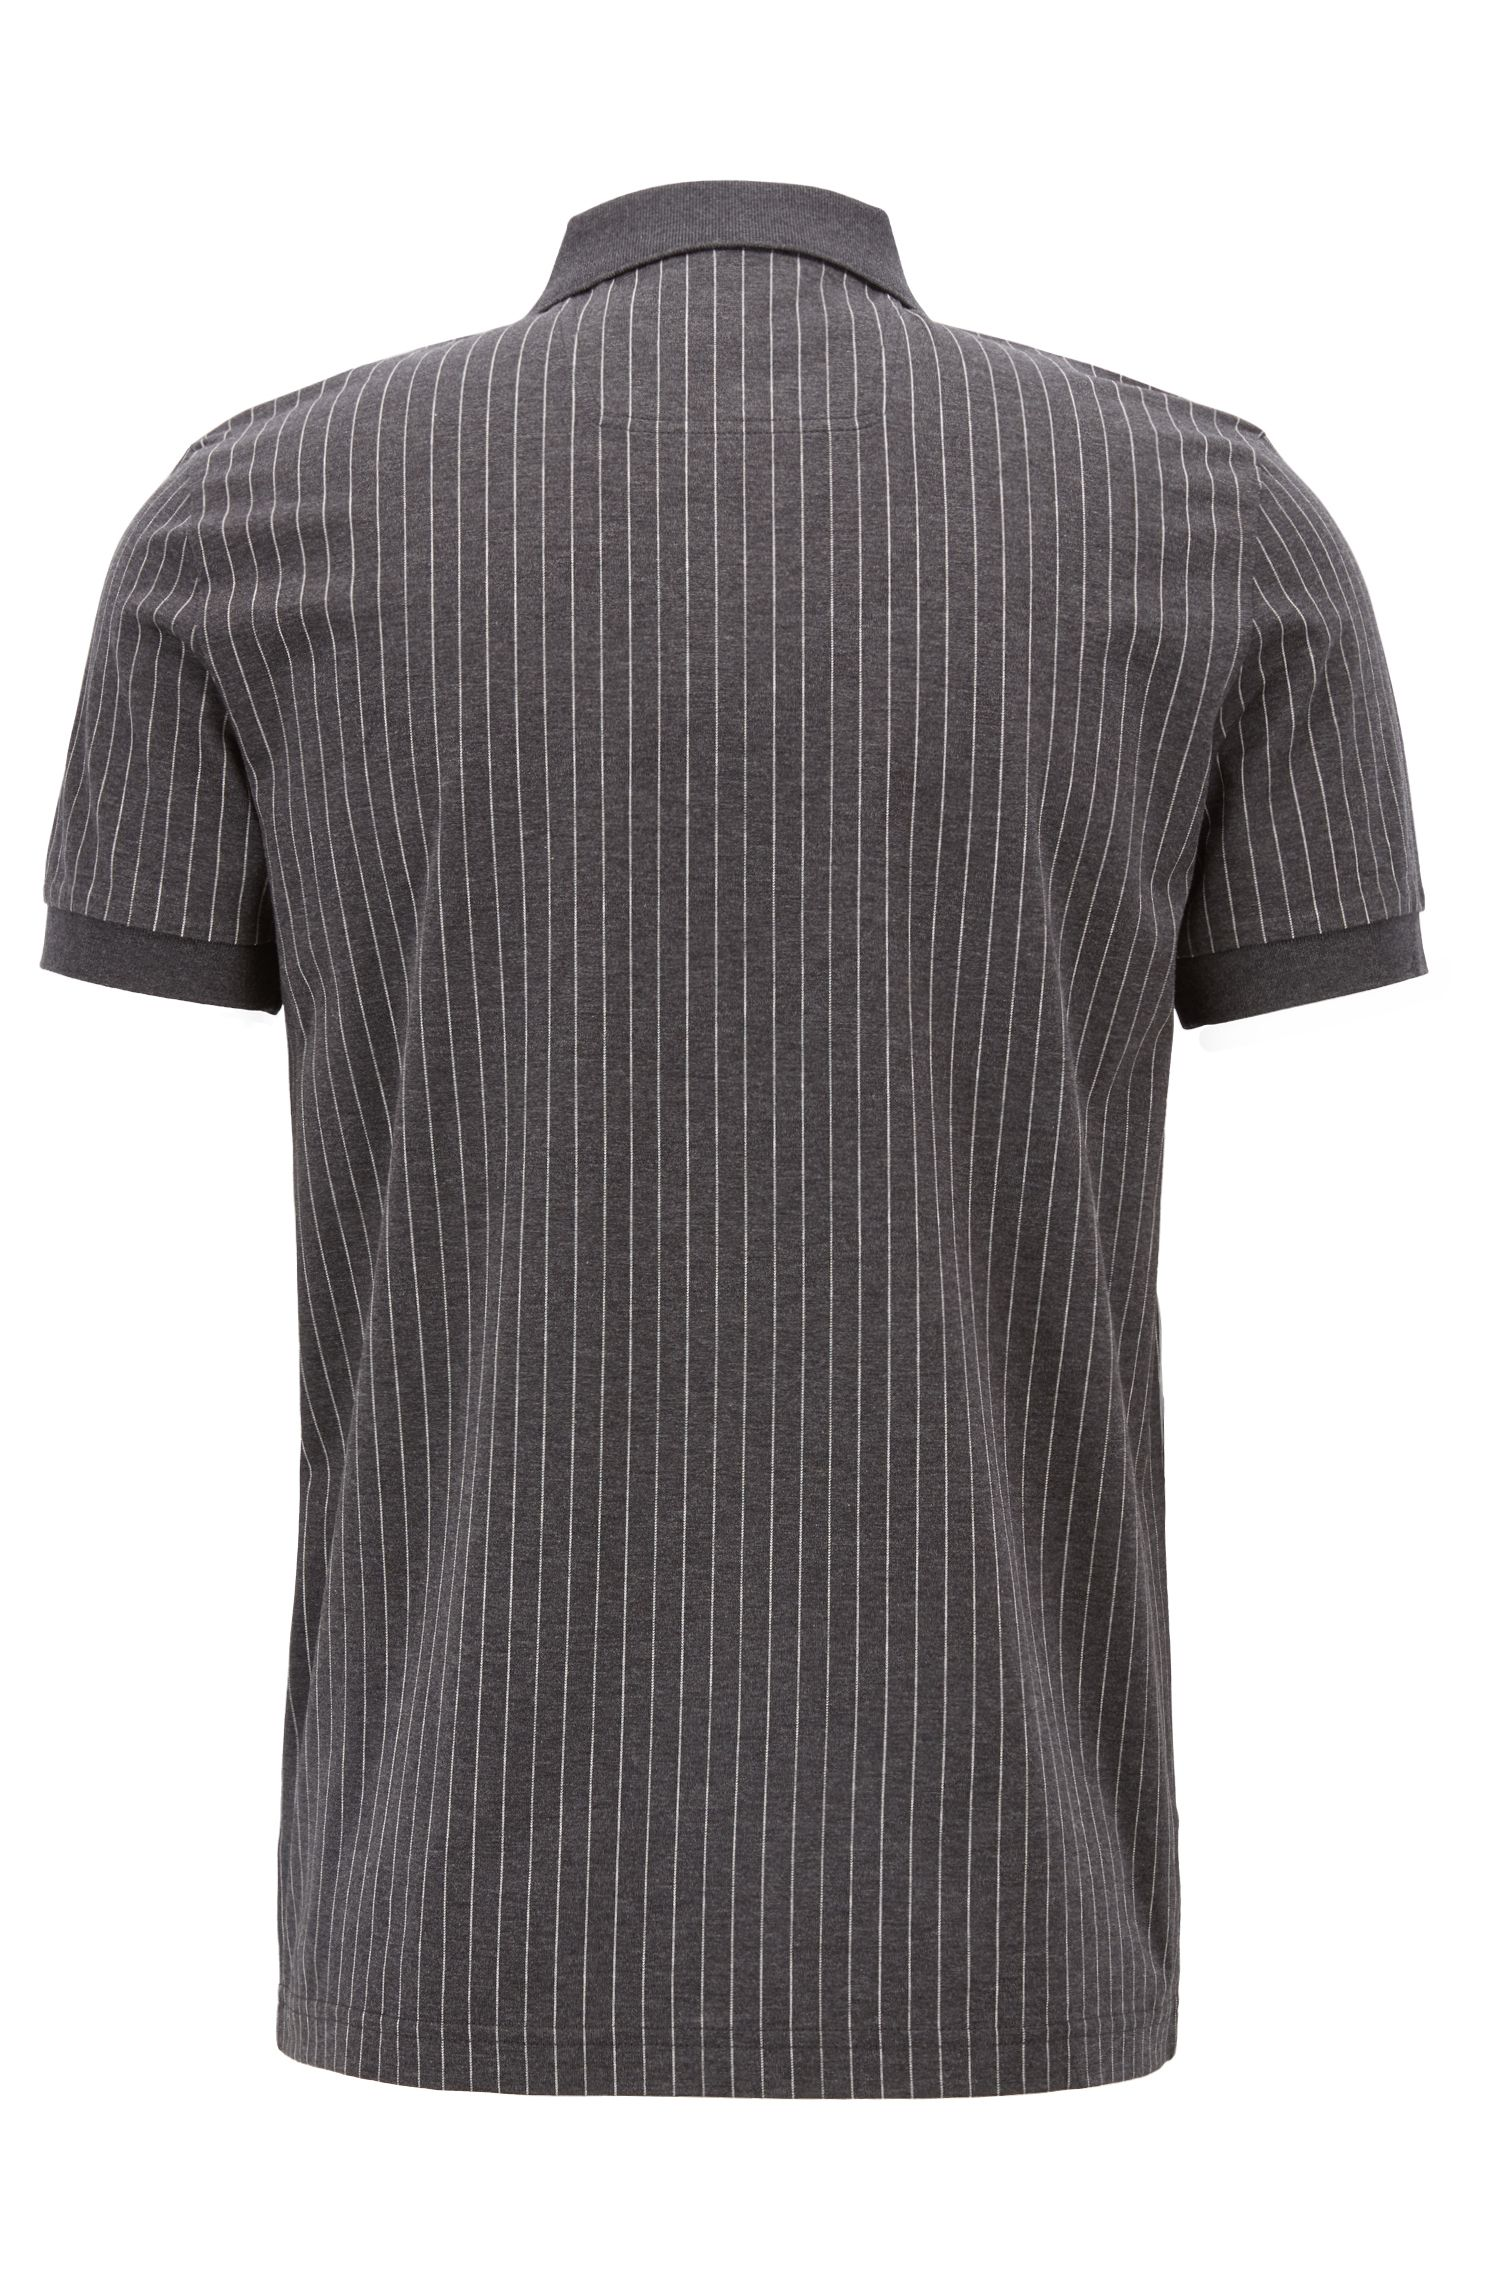 Regular-fit pinstripe polo shirt in mercerized cotton, Charcoal